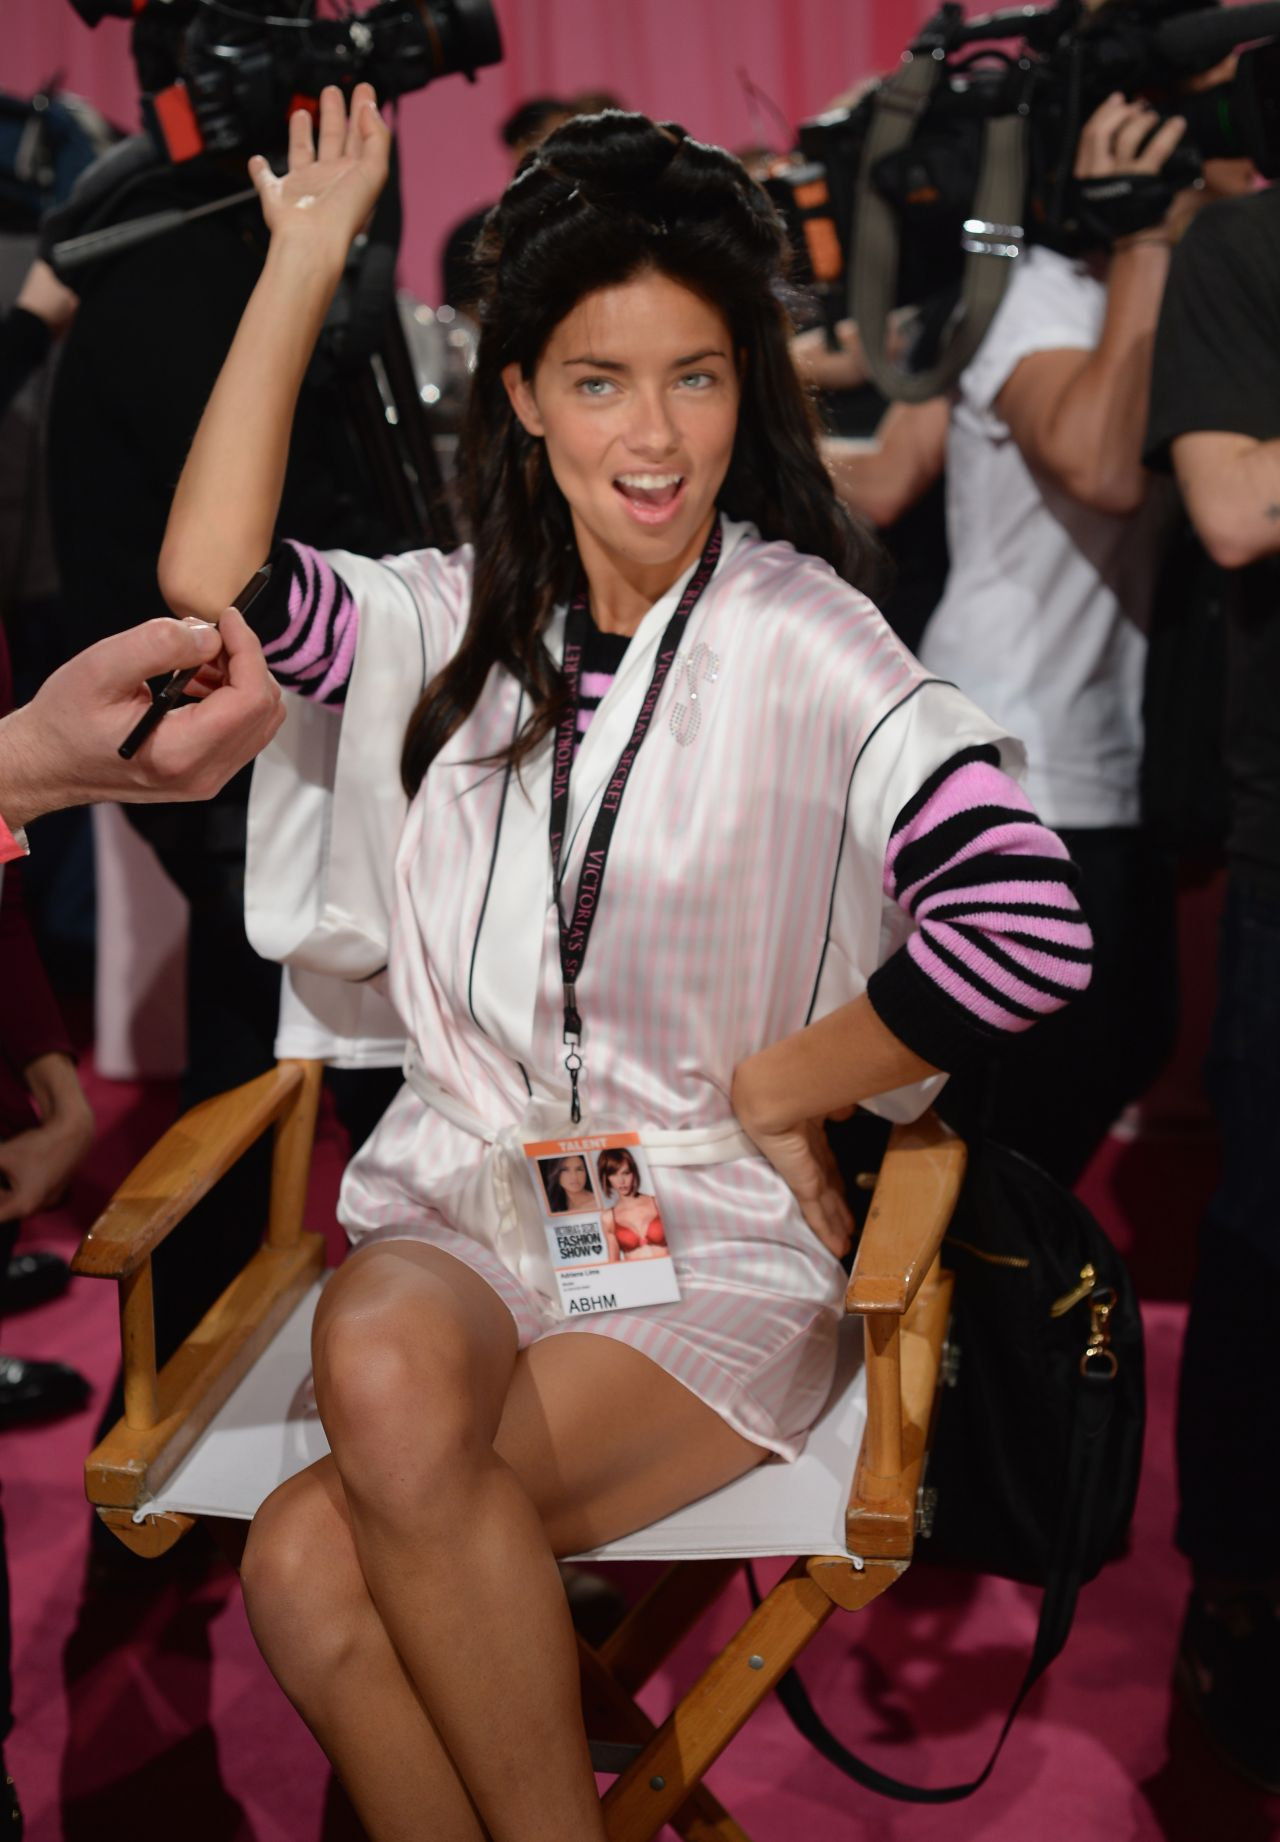 Adriana Lima BackstagePhotos at the 2013 Victoria